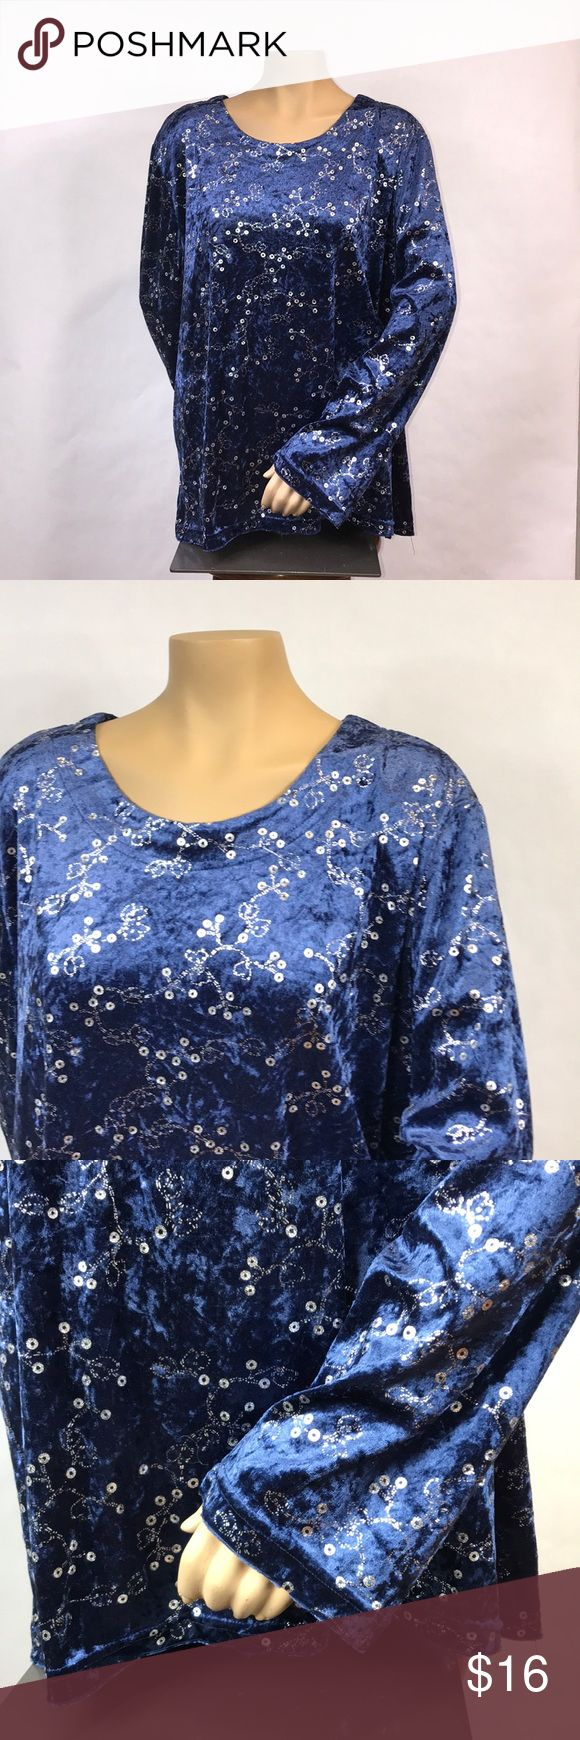 """Salon studio by haband 2X velvet Top Pretty blue crushed velvet look with silver accents.  Was once part of a 2 piece outfit but only selling the shirt.  27"""" armpit to armpit laying flat (loose fitting top) and 27"""" Long. Salon Studio by Haband Tops"""